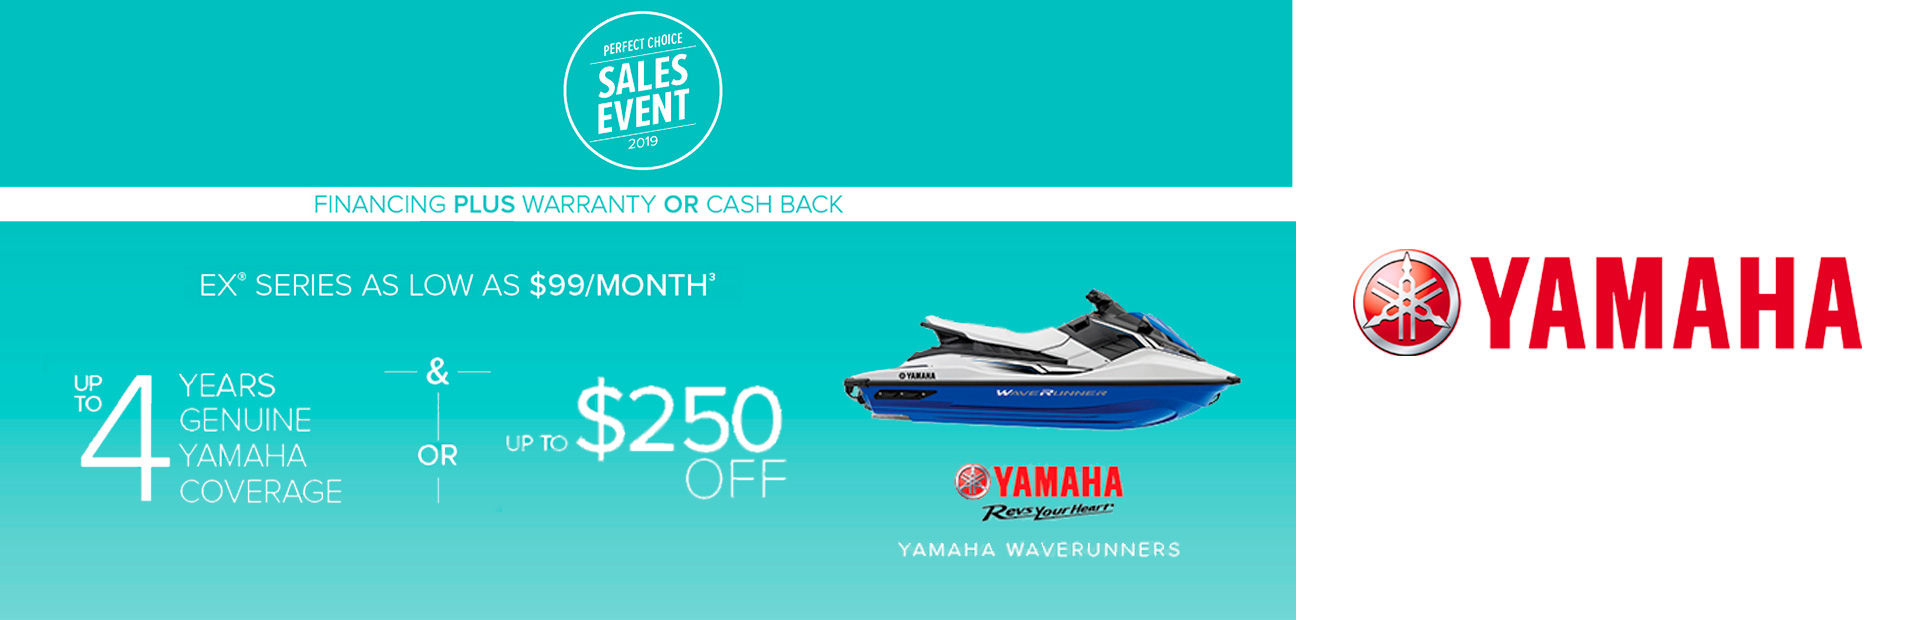 Yamaha: Perfect Choice - EX Series As Low As $99/Month